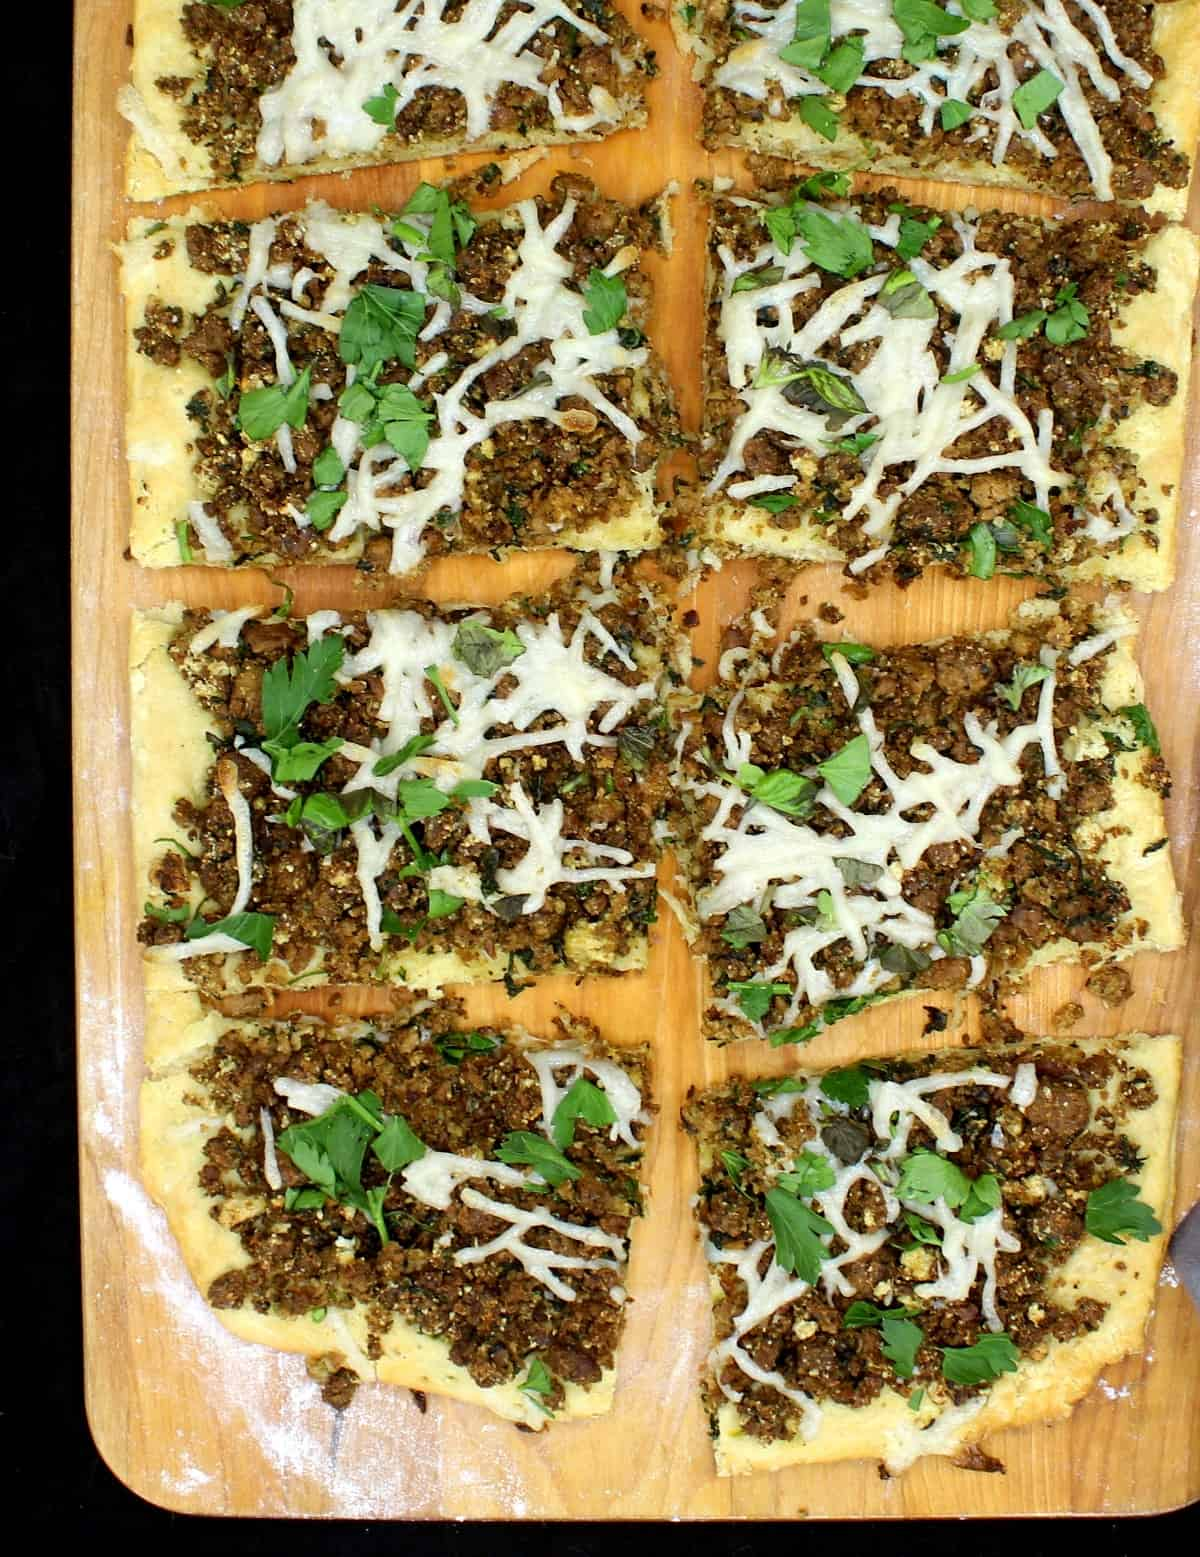 Slices of vegan breakfast sausage pizza with a biscuit crust with cheese and parsley and other herbs on a chopping board.